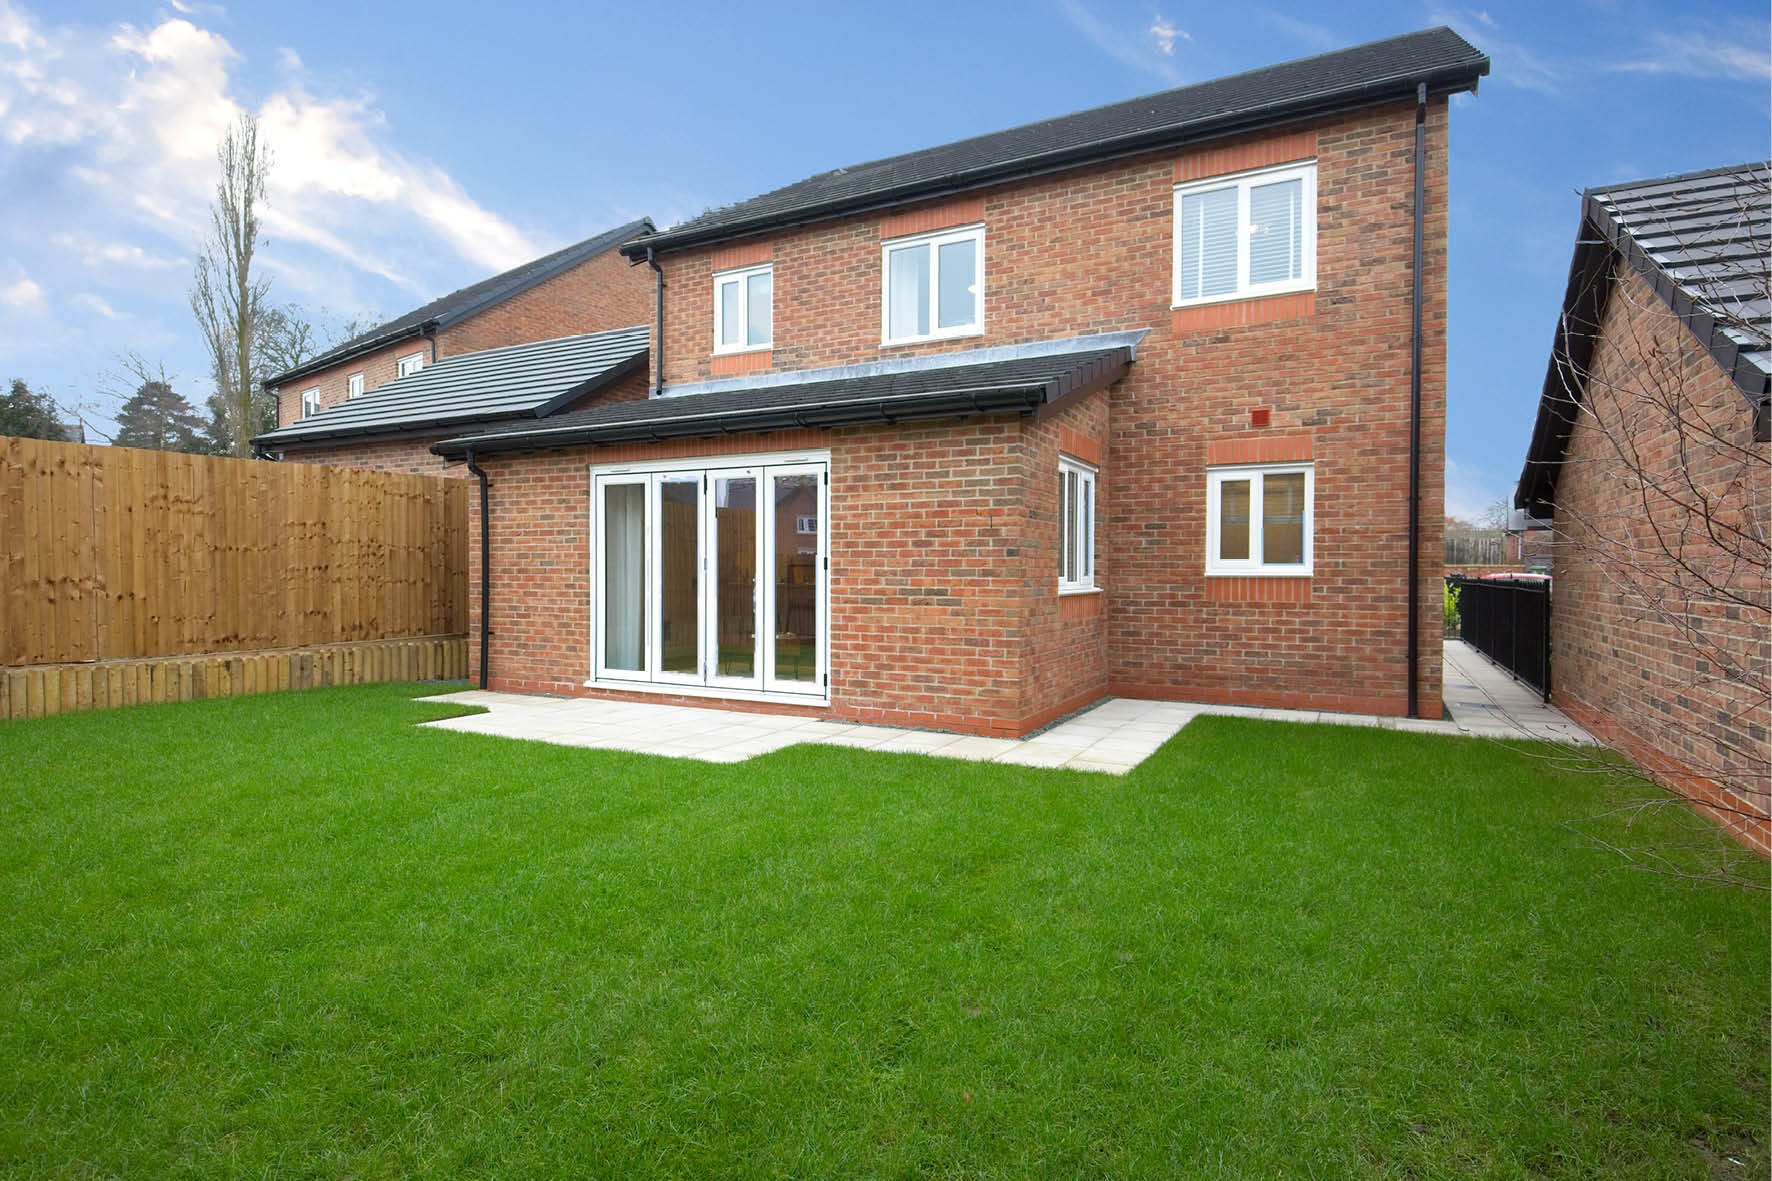 Plot 51 >> Rear aspect